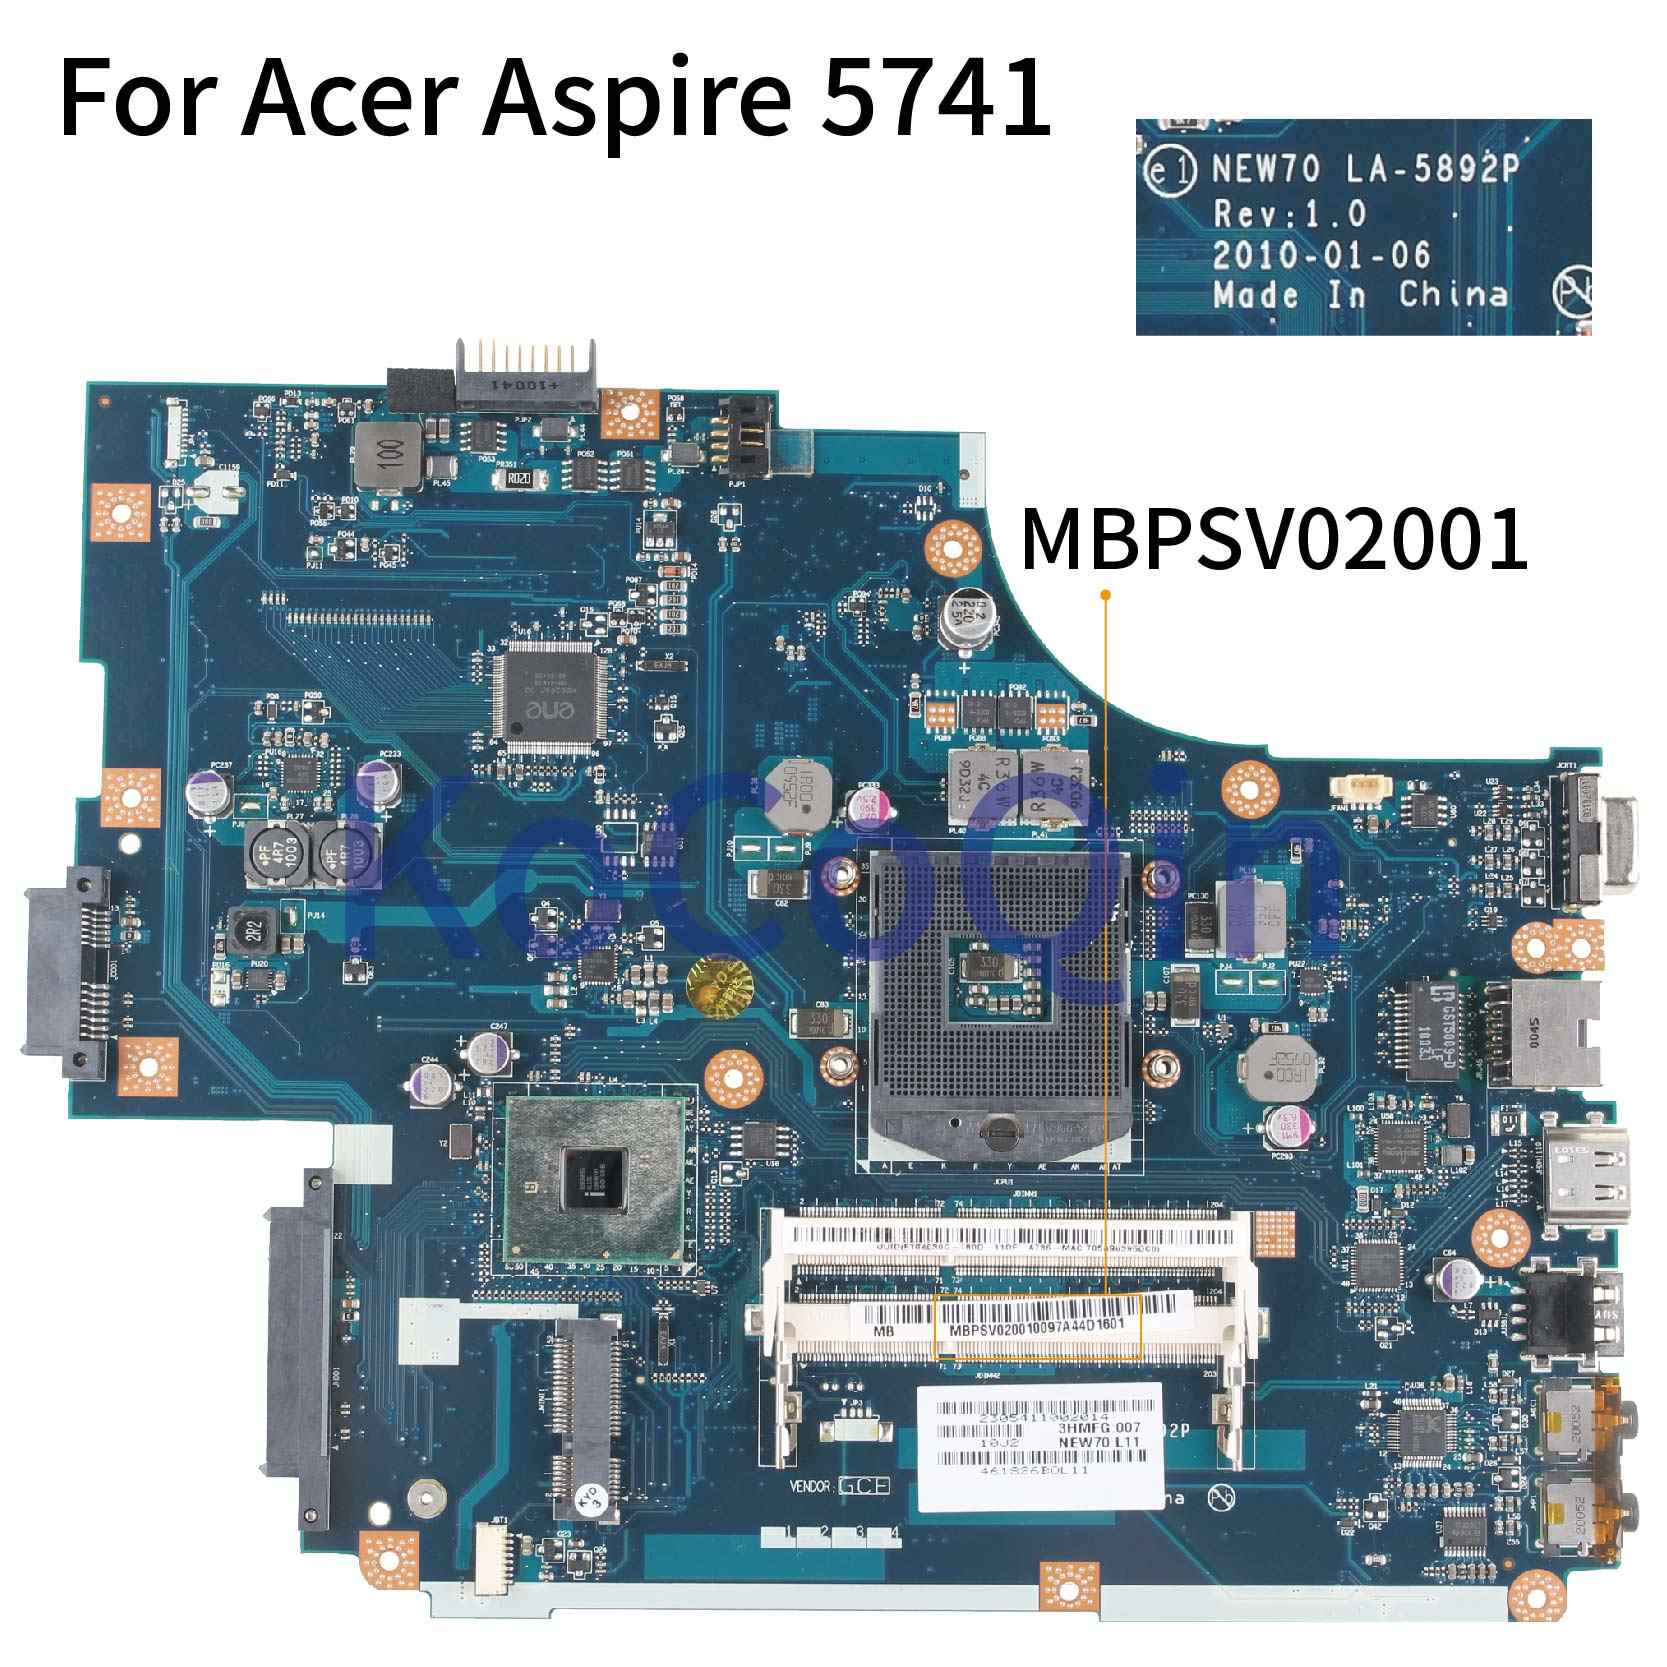 KoCoQin האם מחשב נייד עבור Acer Aspire 5741 5741ZG NV59C Mainboard MBPSV02001 NEW70 LA-5892P במקום LA-5891P LA-5893P